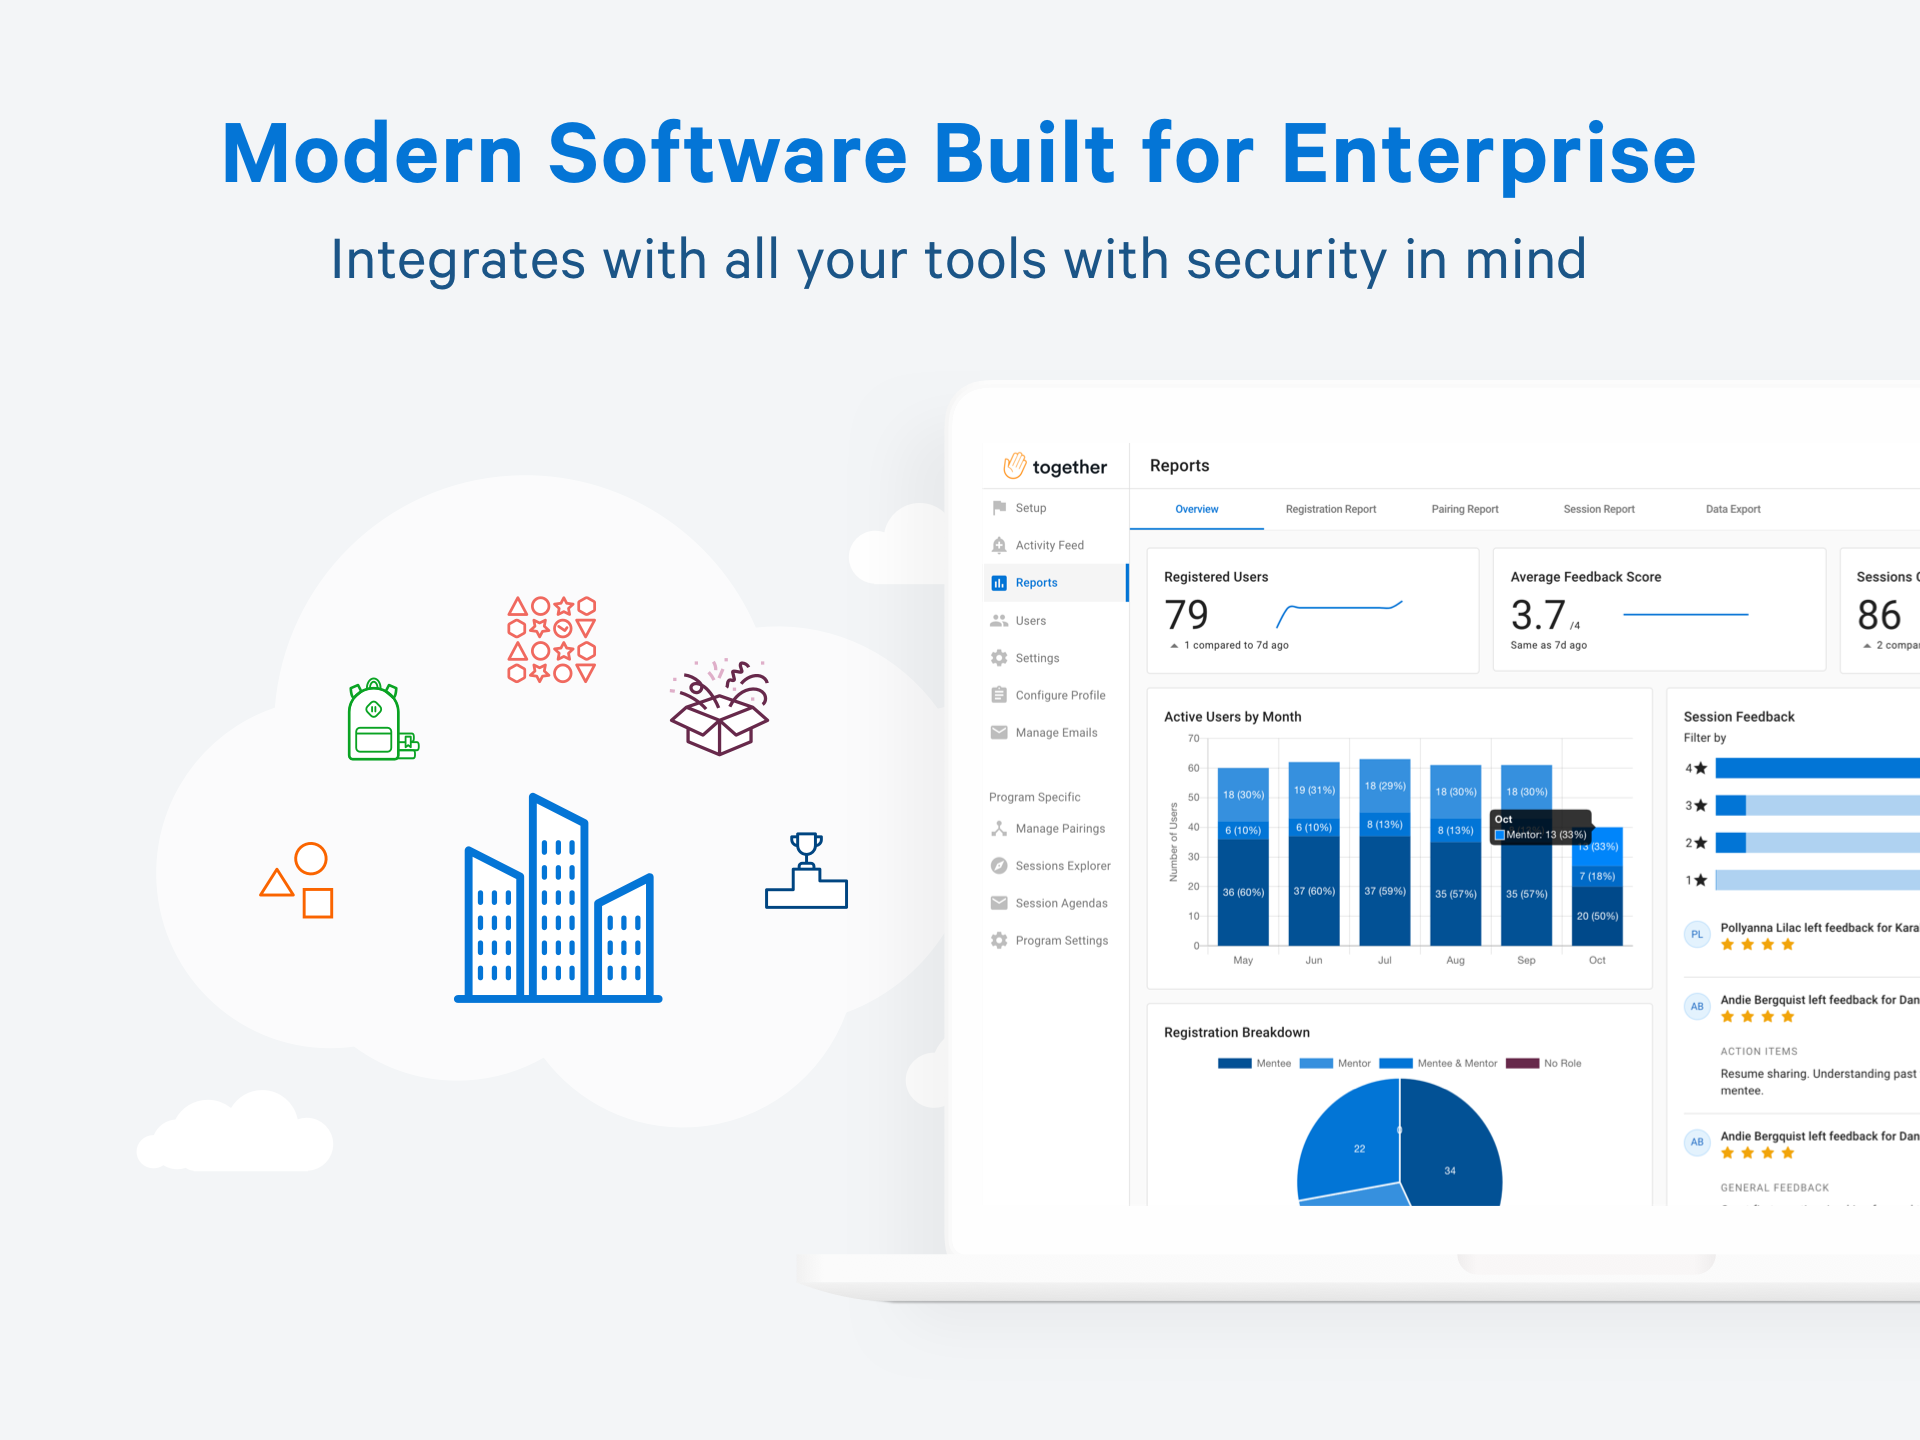 Powerful integrations with everything you already use. Integrated with email and calendar tools like GSuite, Microsoft Teams, and Zoom. Connects with HRIS - Workday, UltiPro, Bamboo, ADP, SuccessFactors + many more!